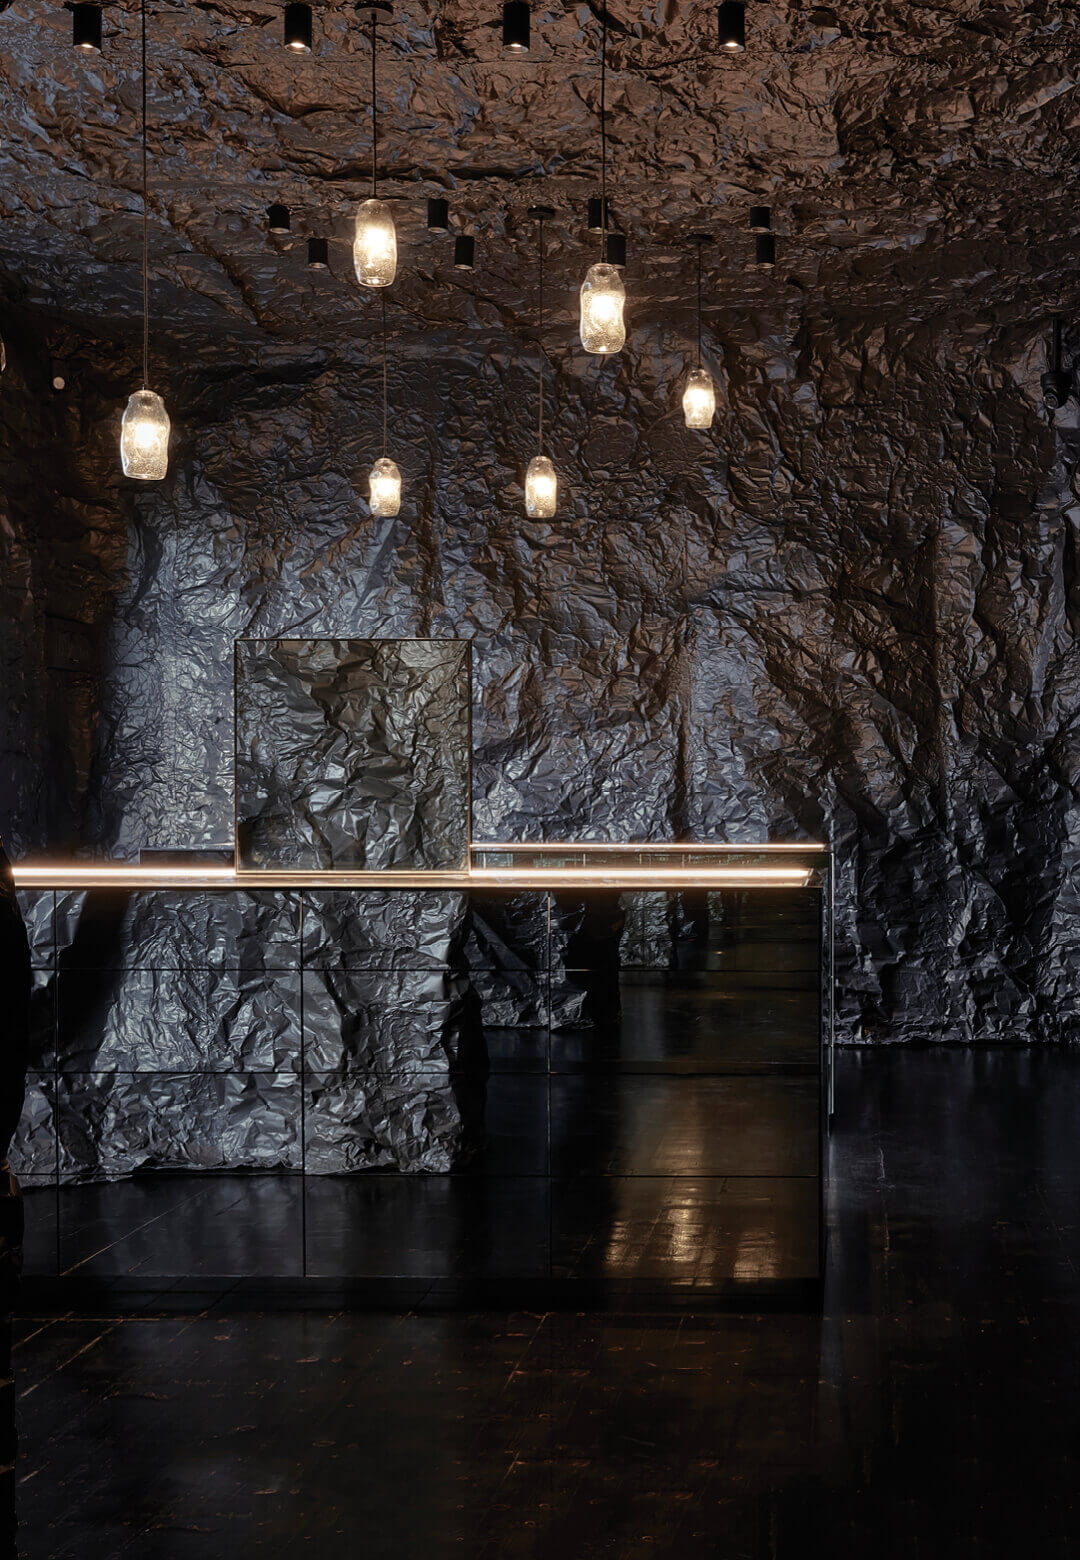 Cave-like landscape installation by Russell & George for jewellery brand Sarah & Sebastian   Sarah & Sebastian   Russell & George   STIRworld